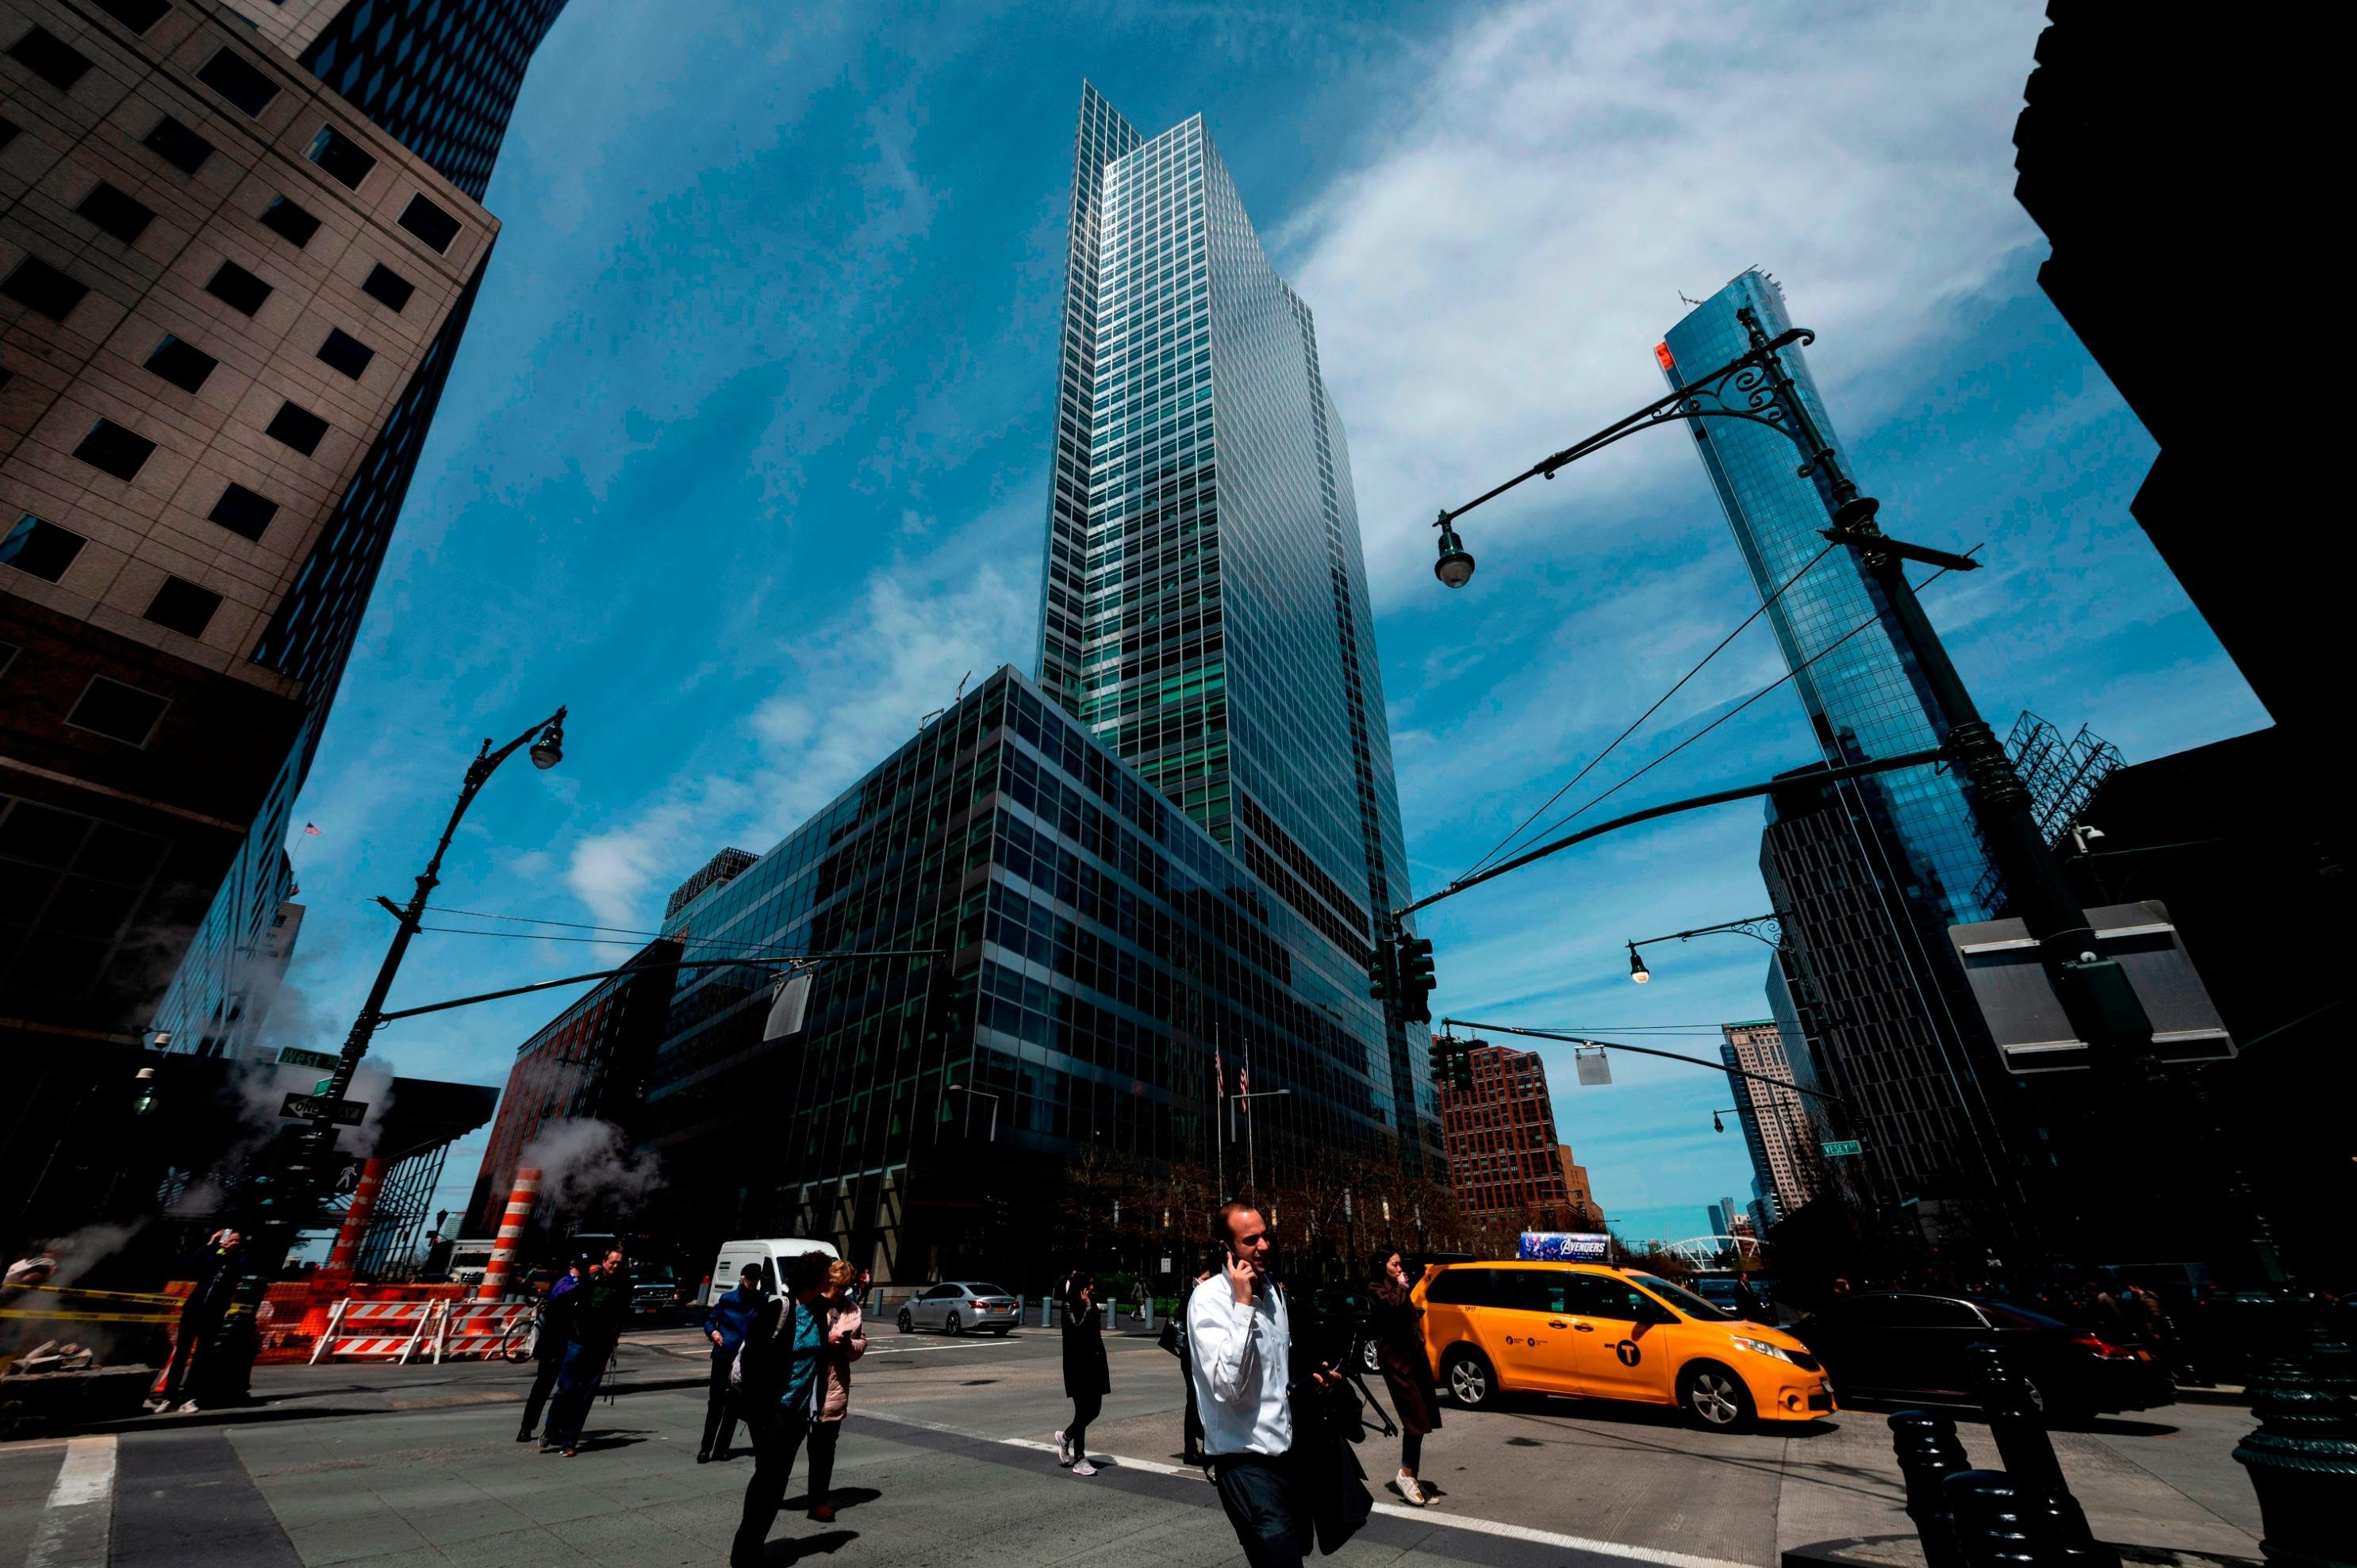 Goldman Sachs' sales slump, but it remains the king of Wall Street